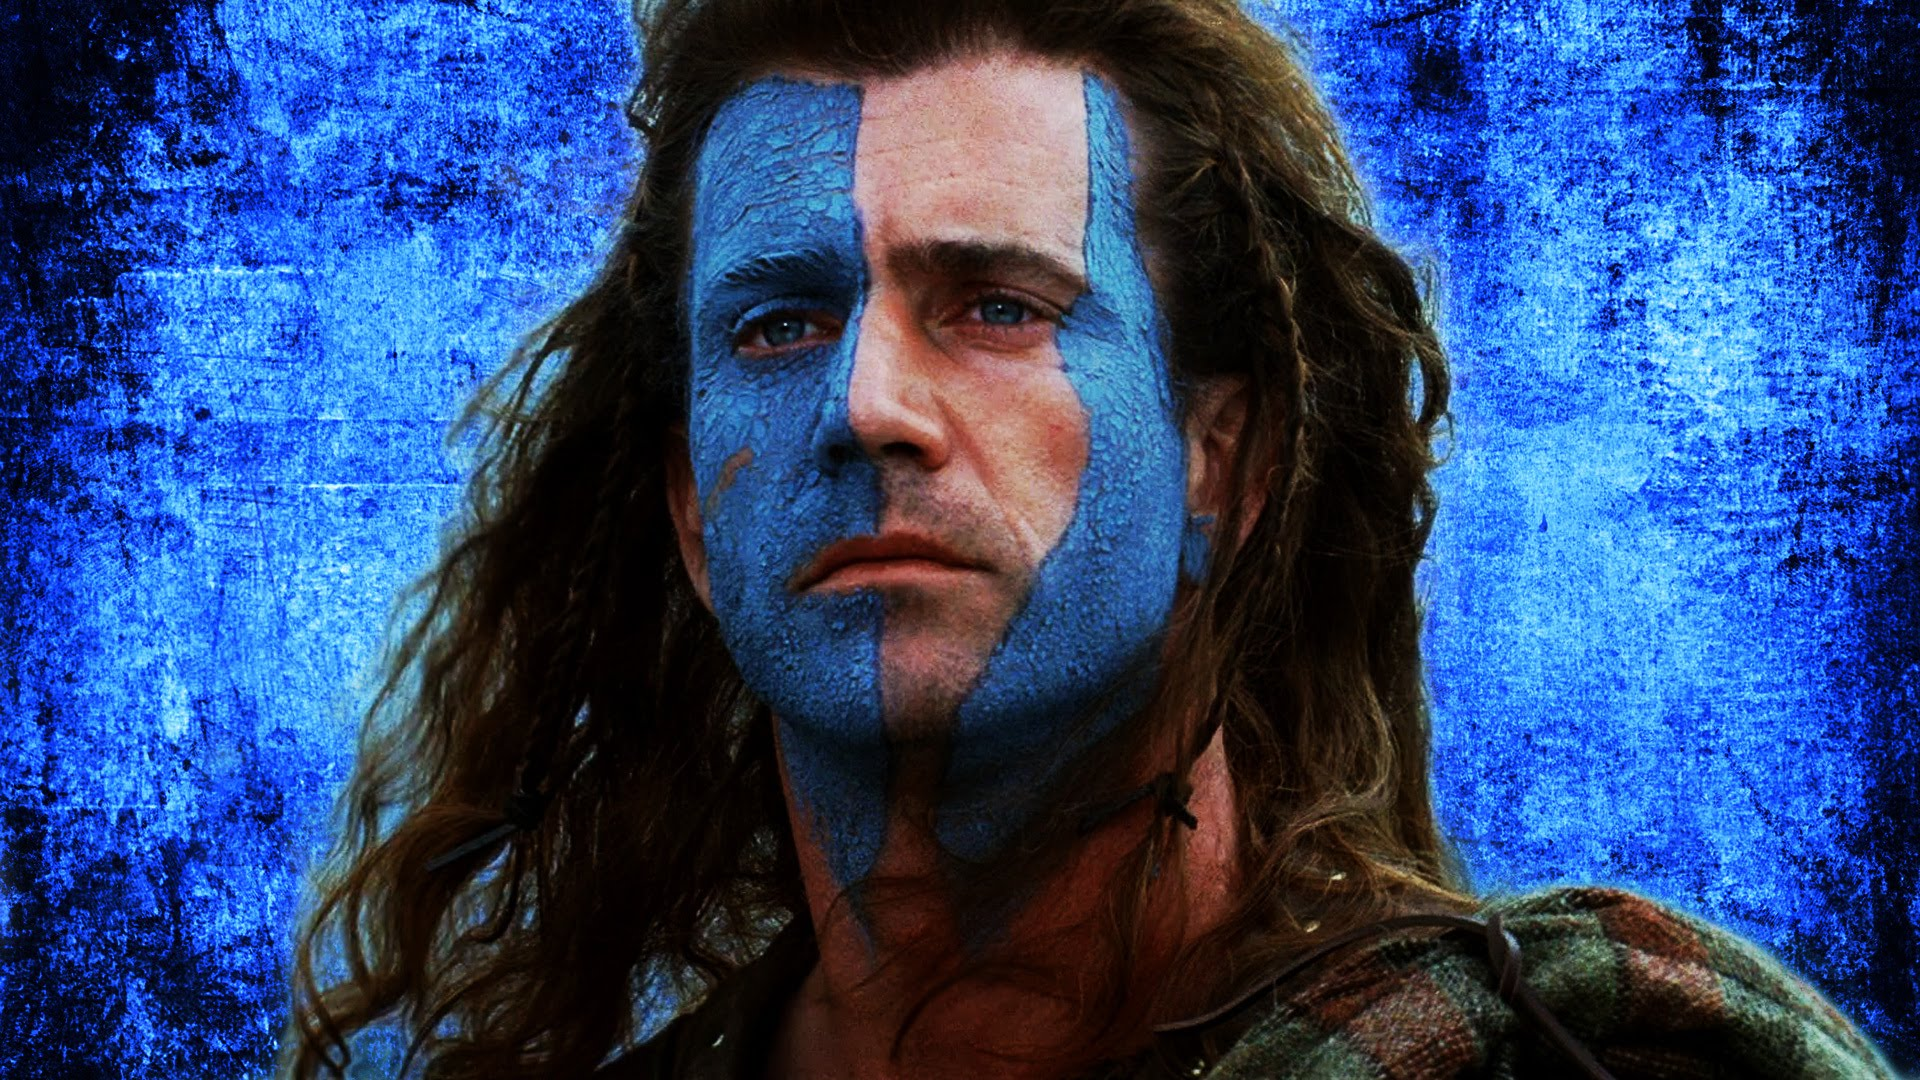 Braveheart Backgrounds, Compatible - PC, Mobile, Gadgets| 1920x1080 px